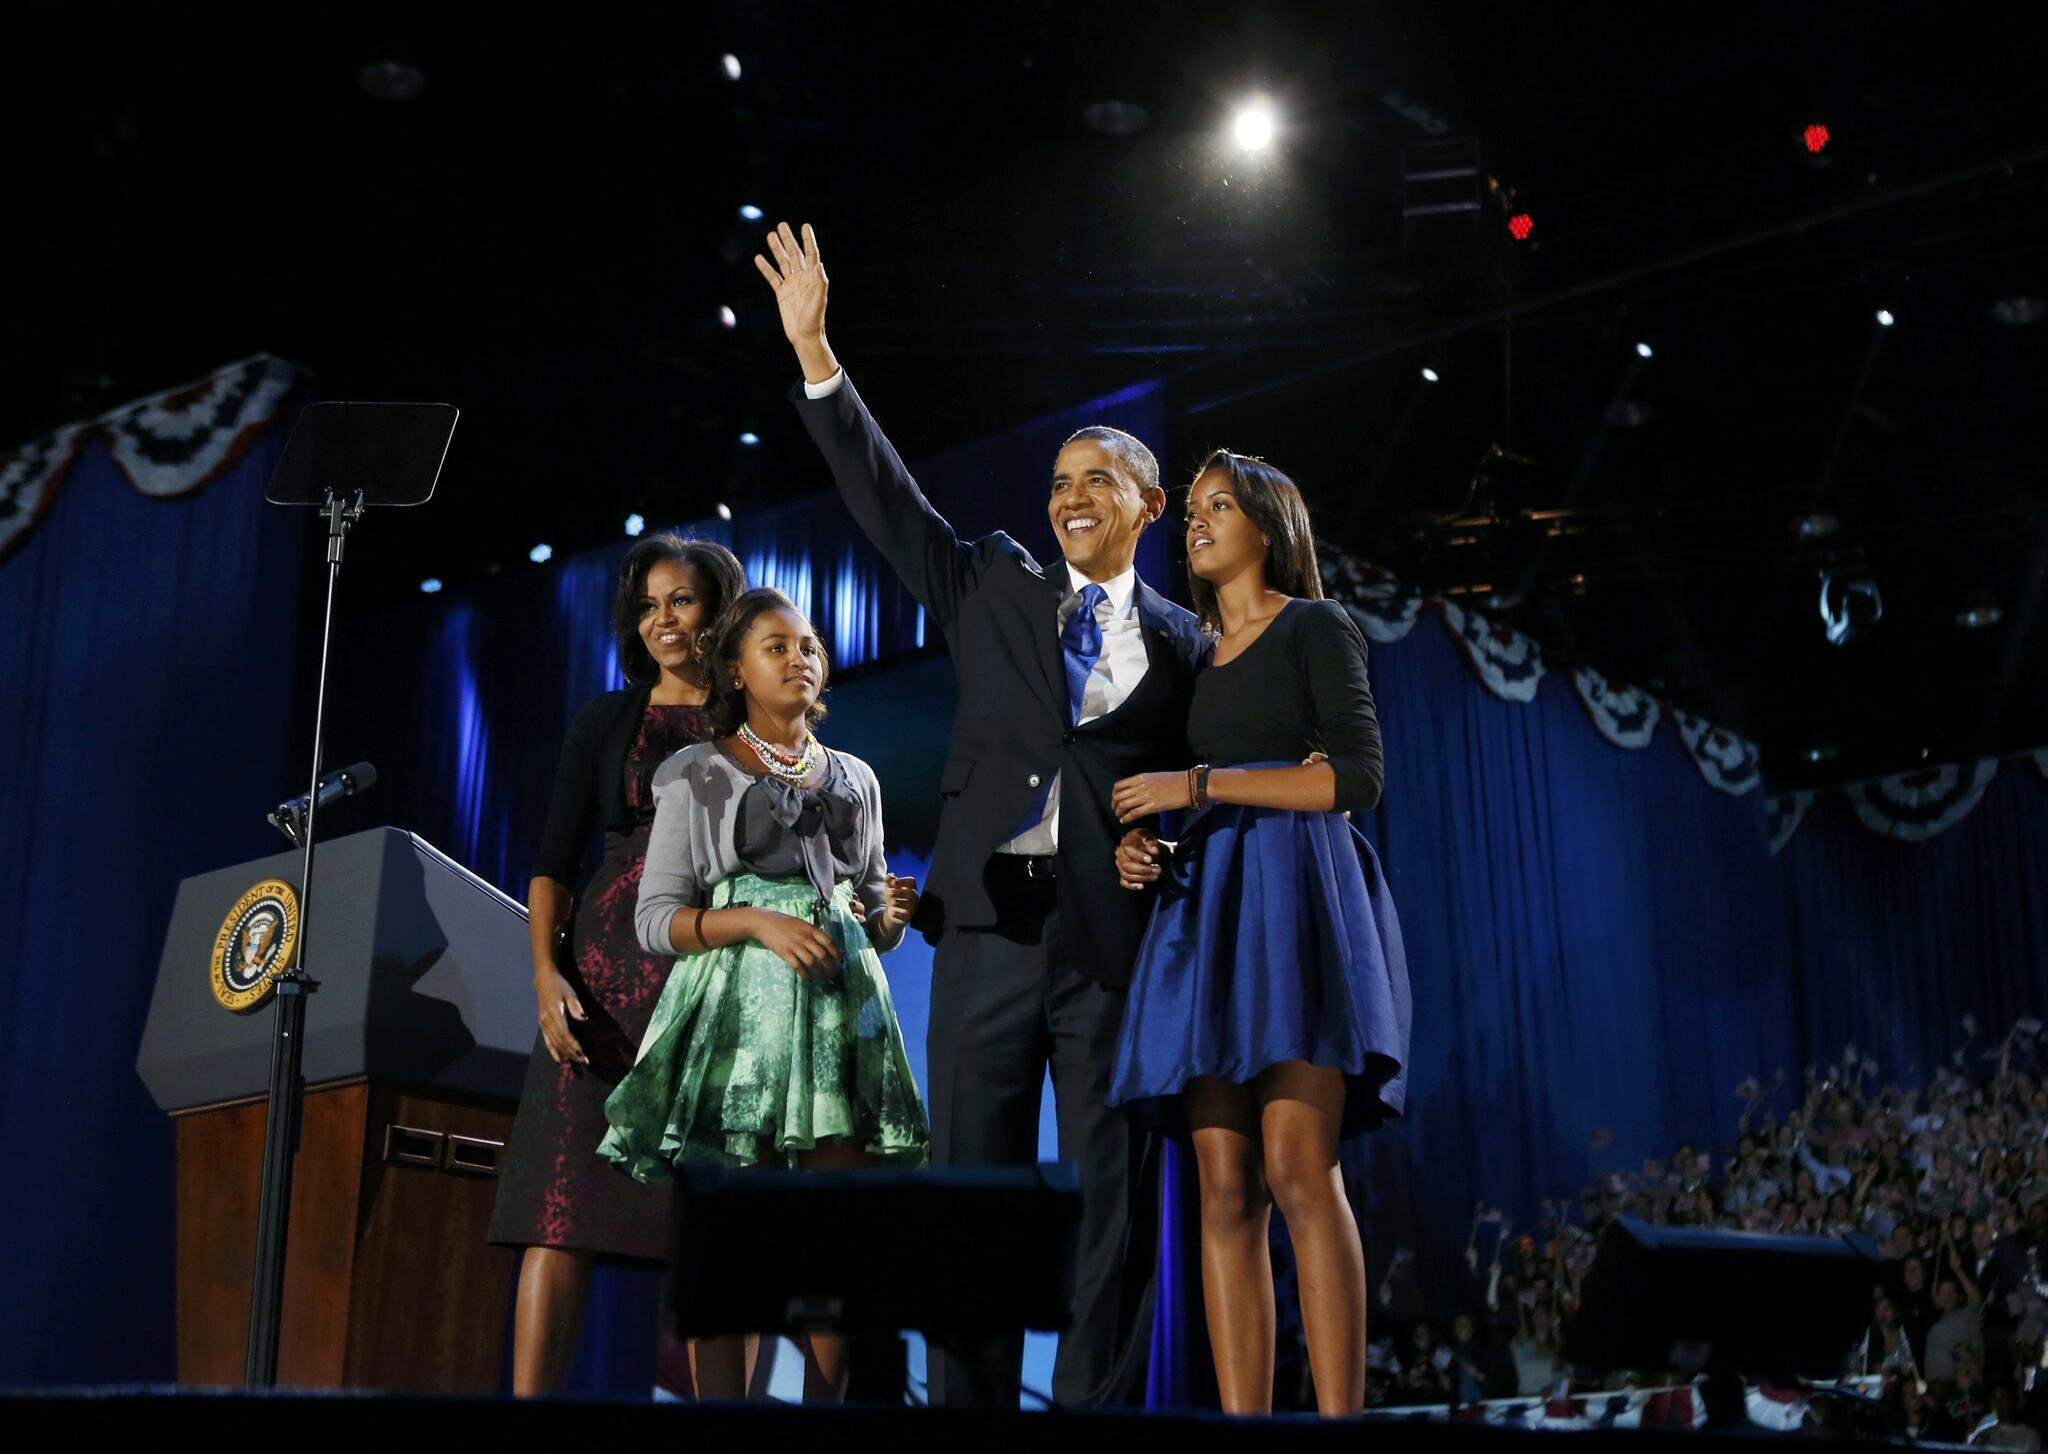 Barack Obama has been re-elected for an historic second term as US President.